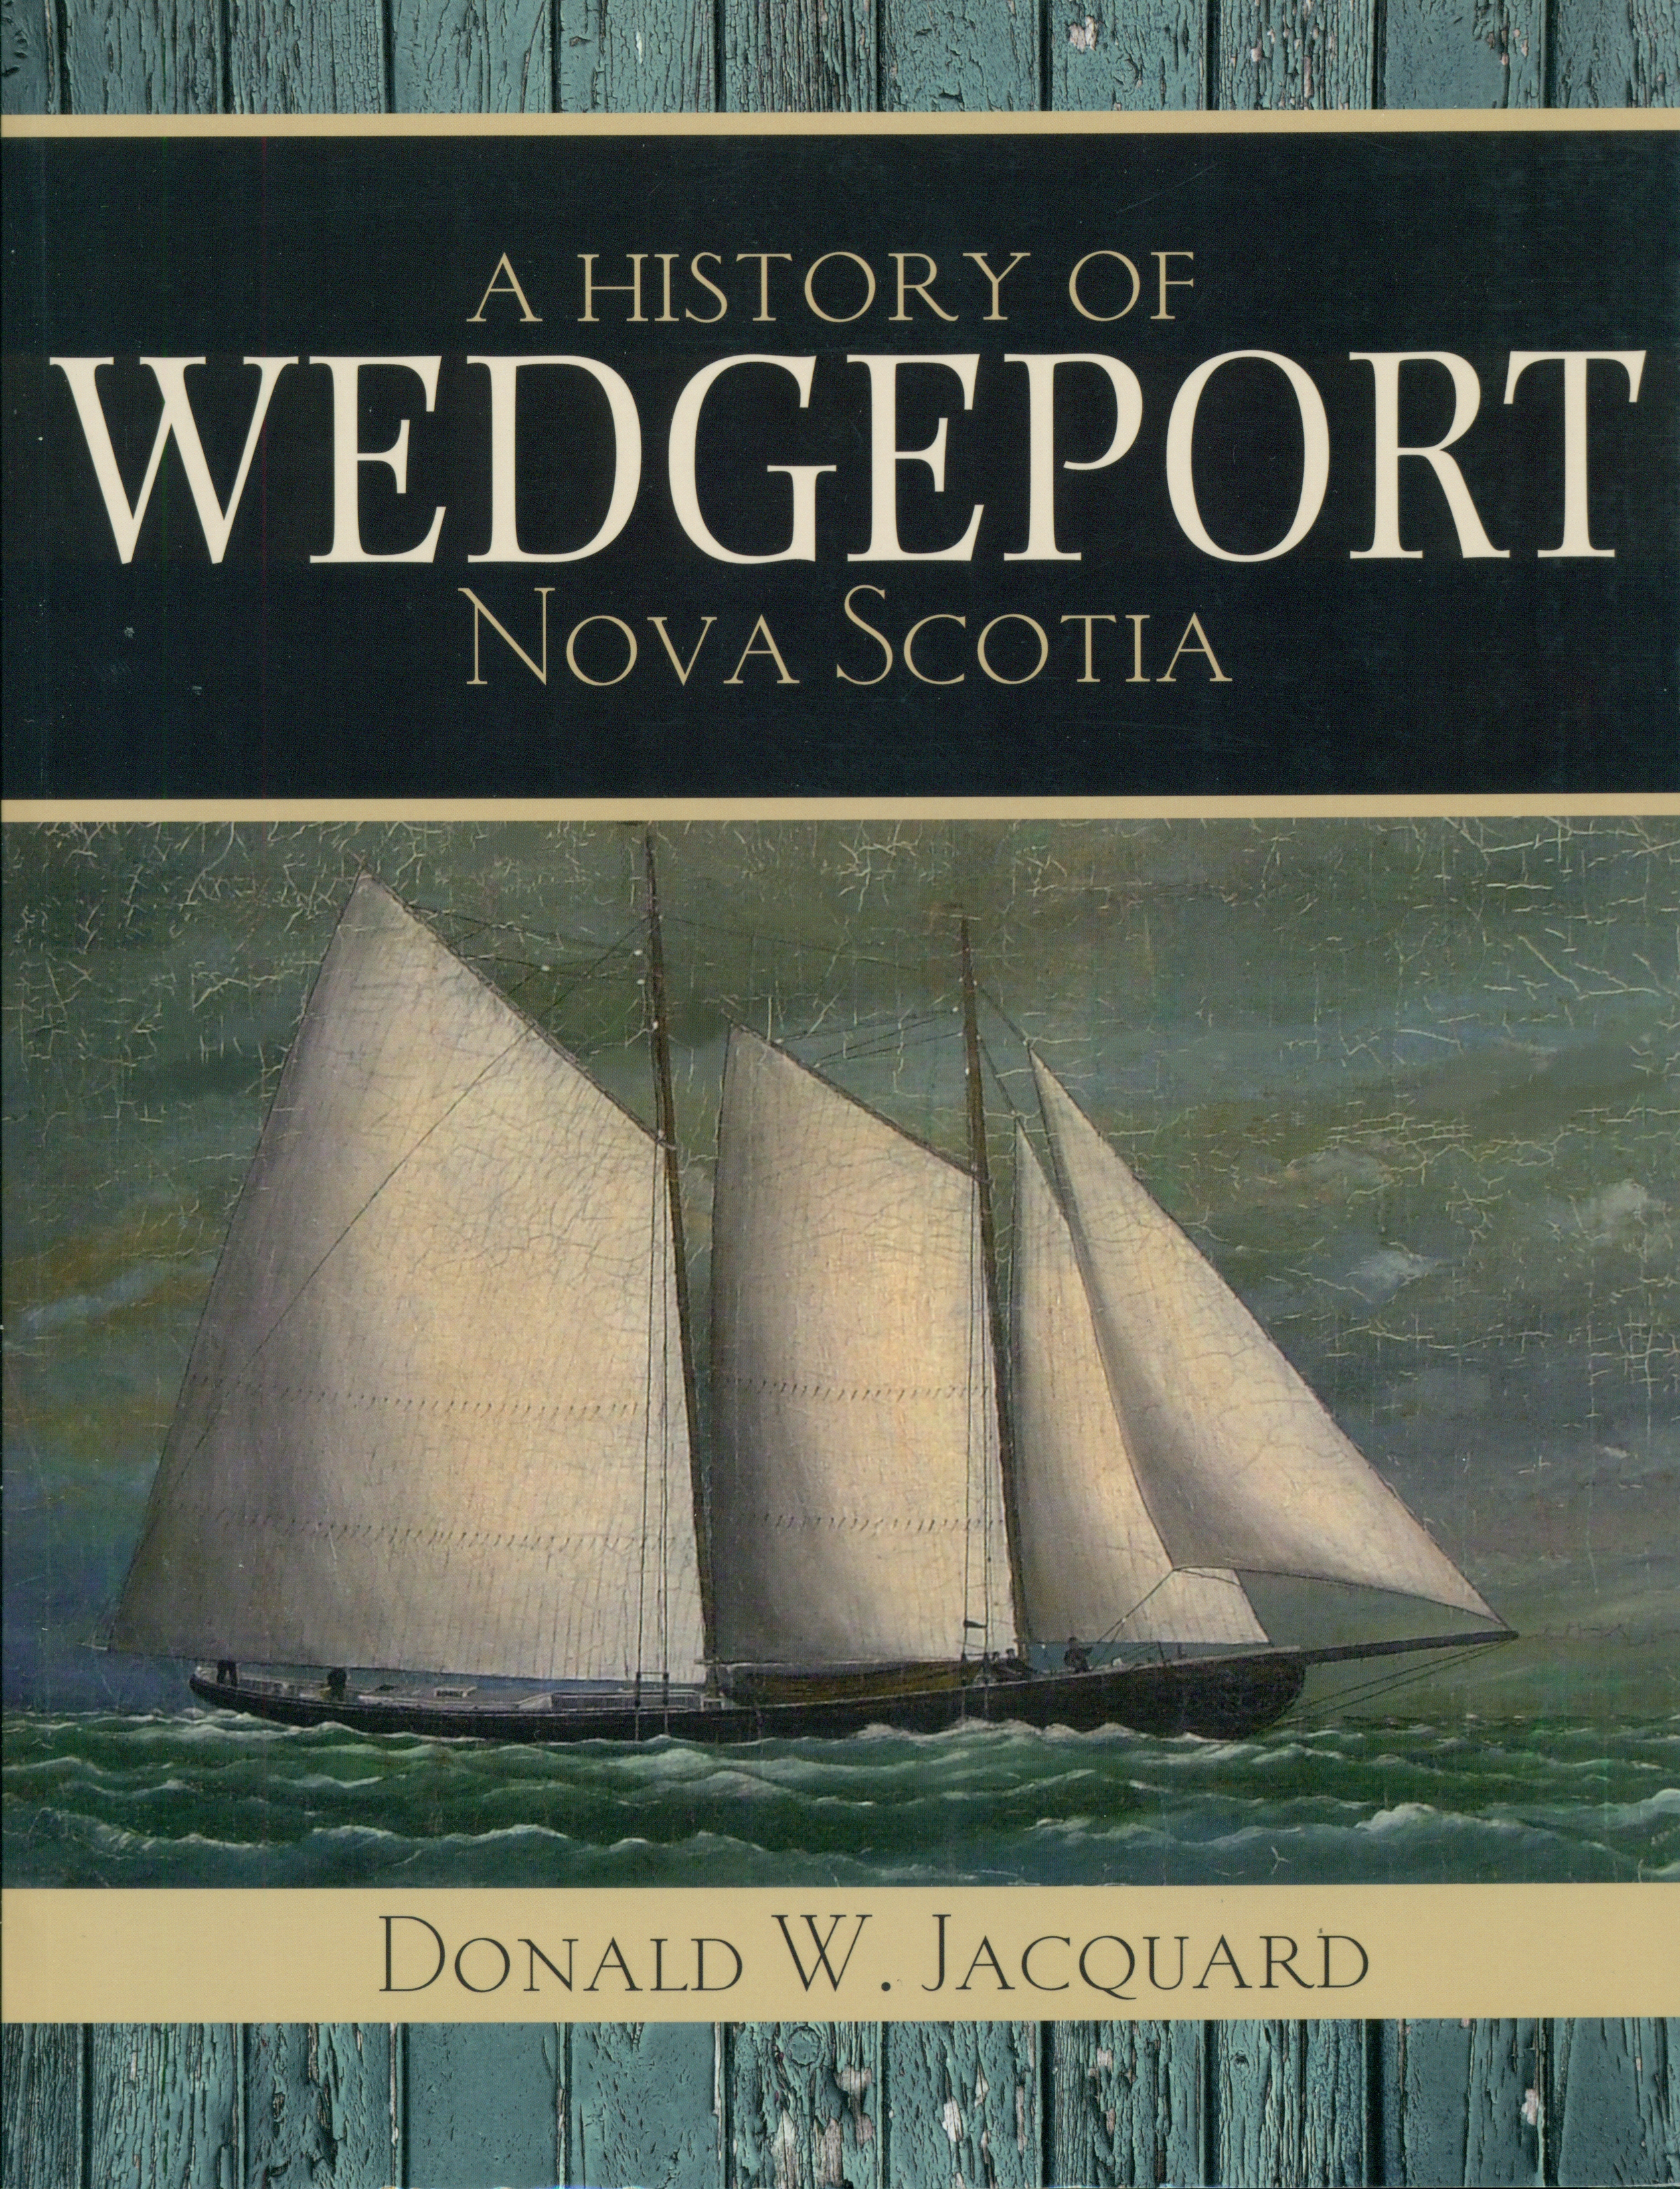 History of Wedgeport